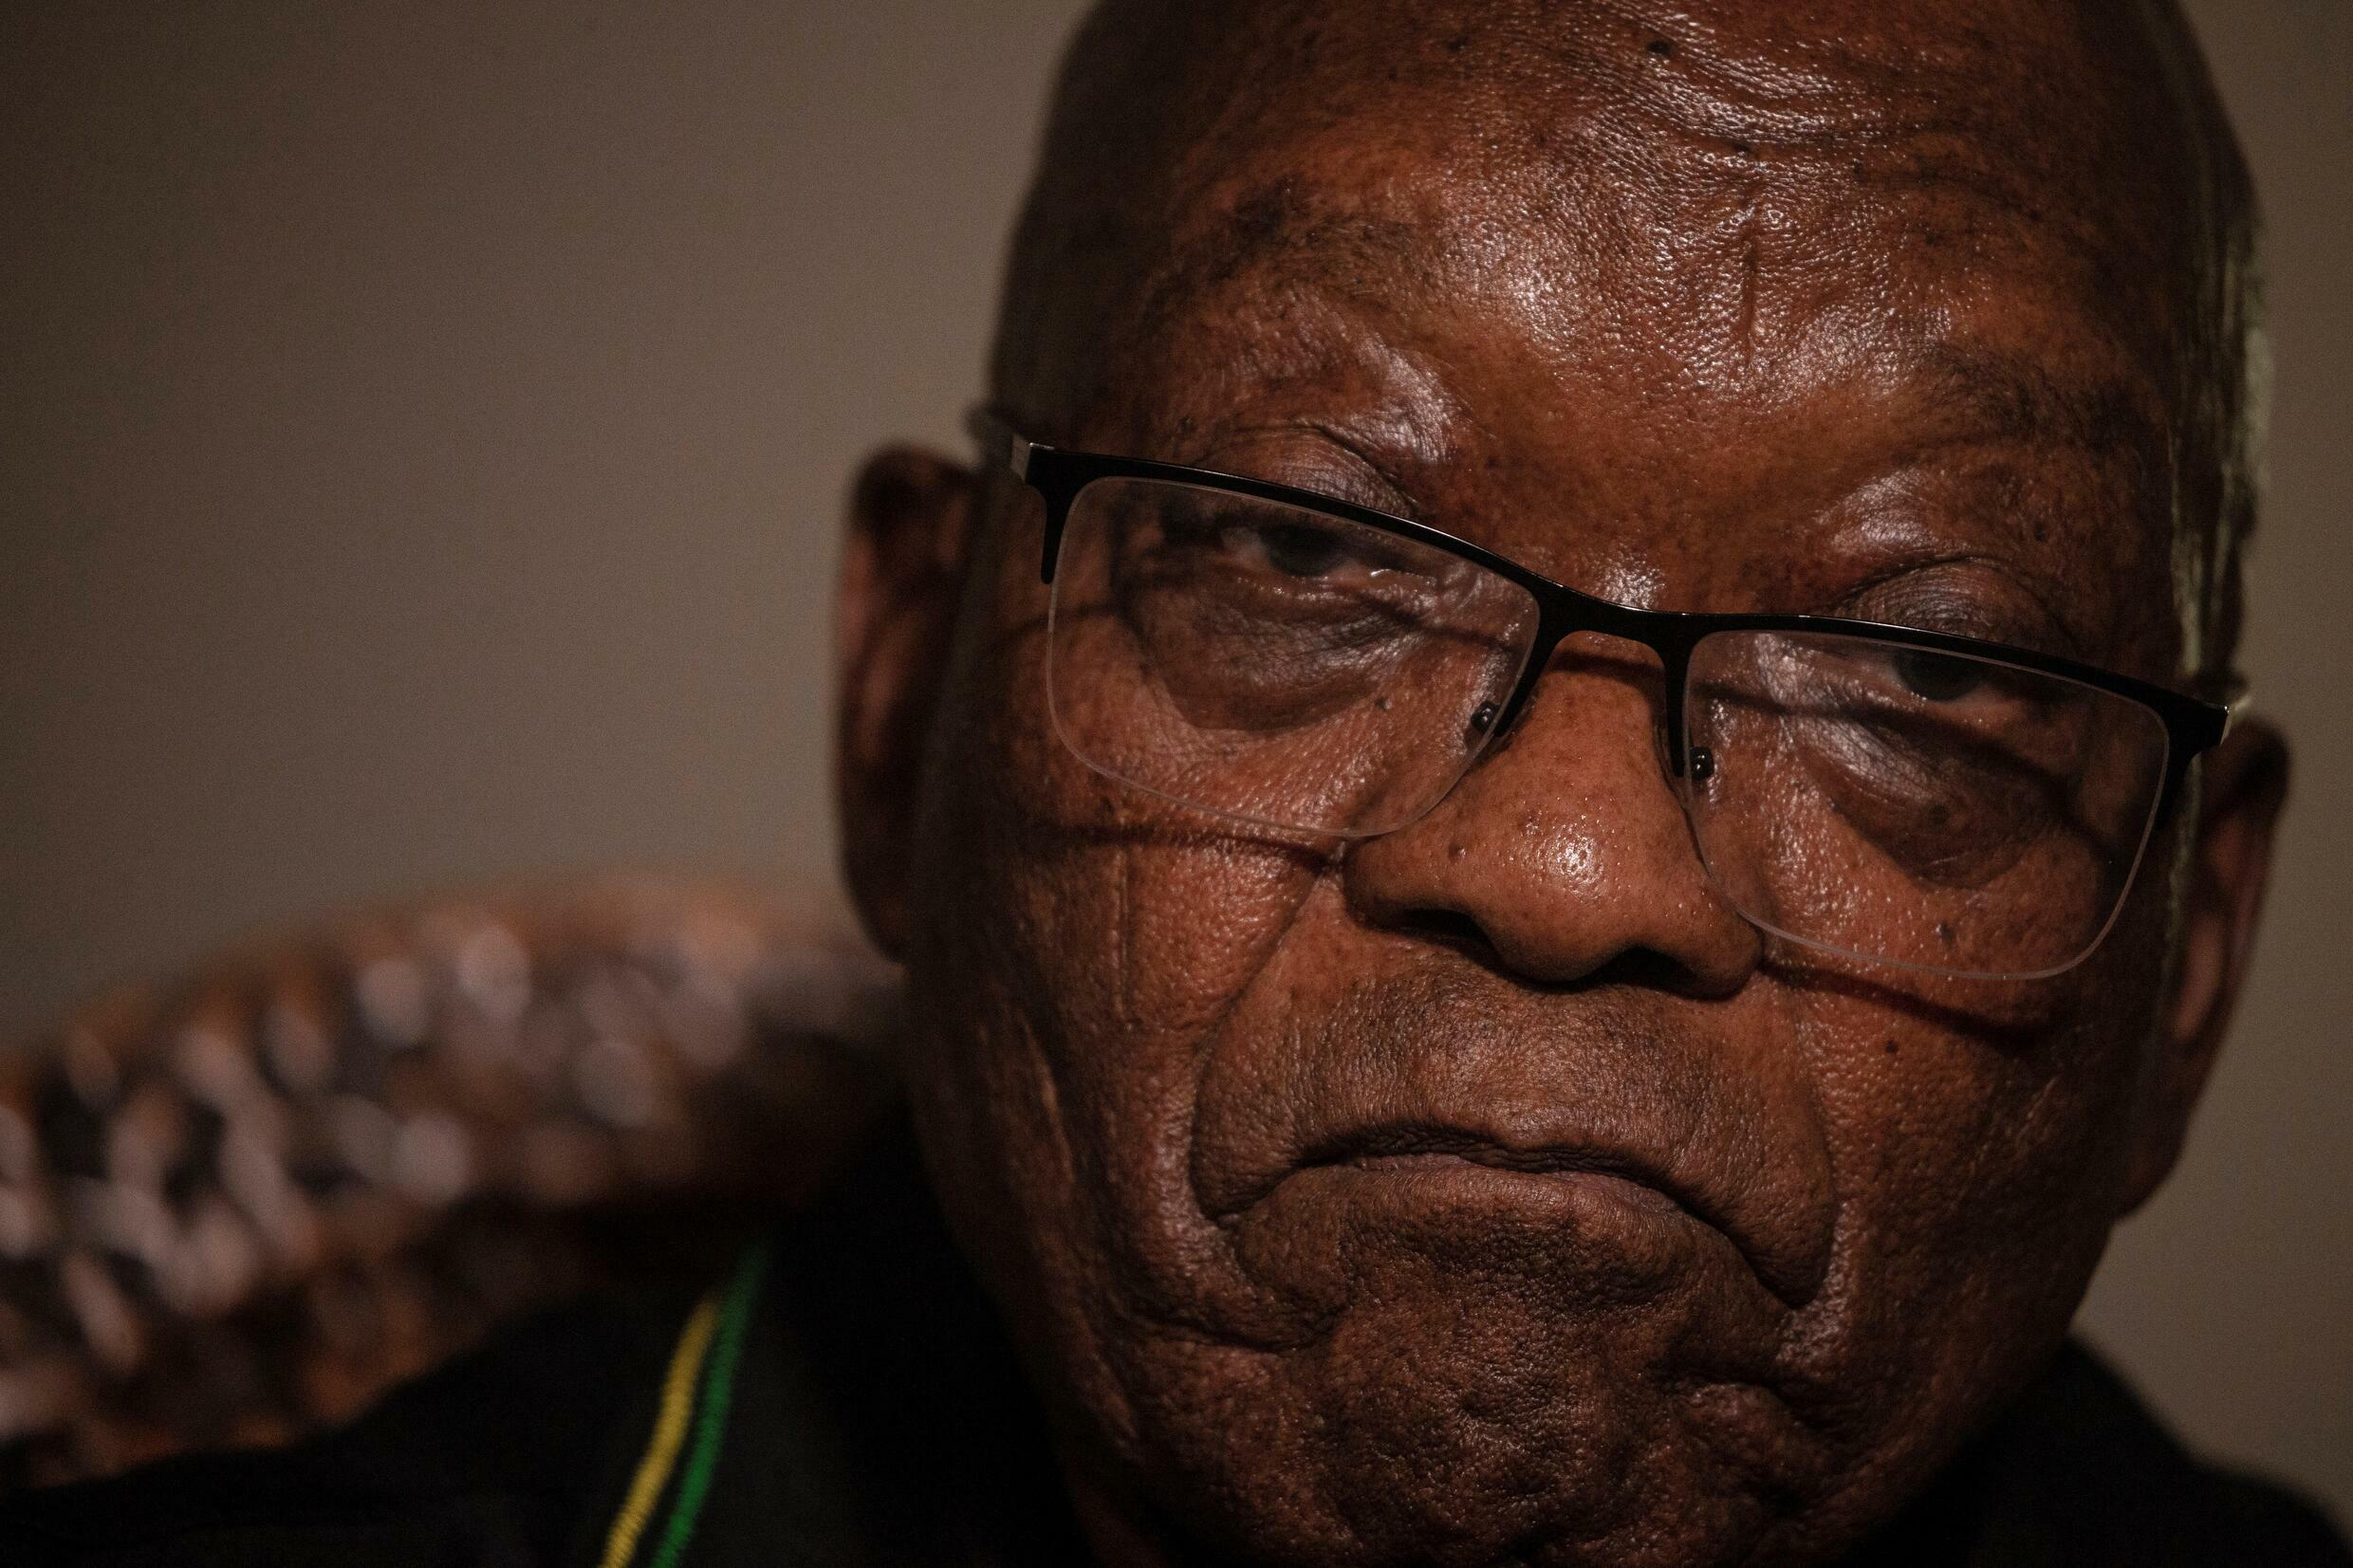 Charismatic and jovial, South Africa's ex-president Jacob Zuma was ousted by his own ANC party over accusations of corruption